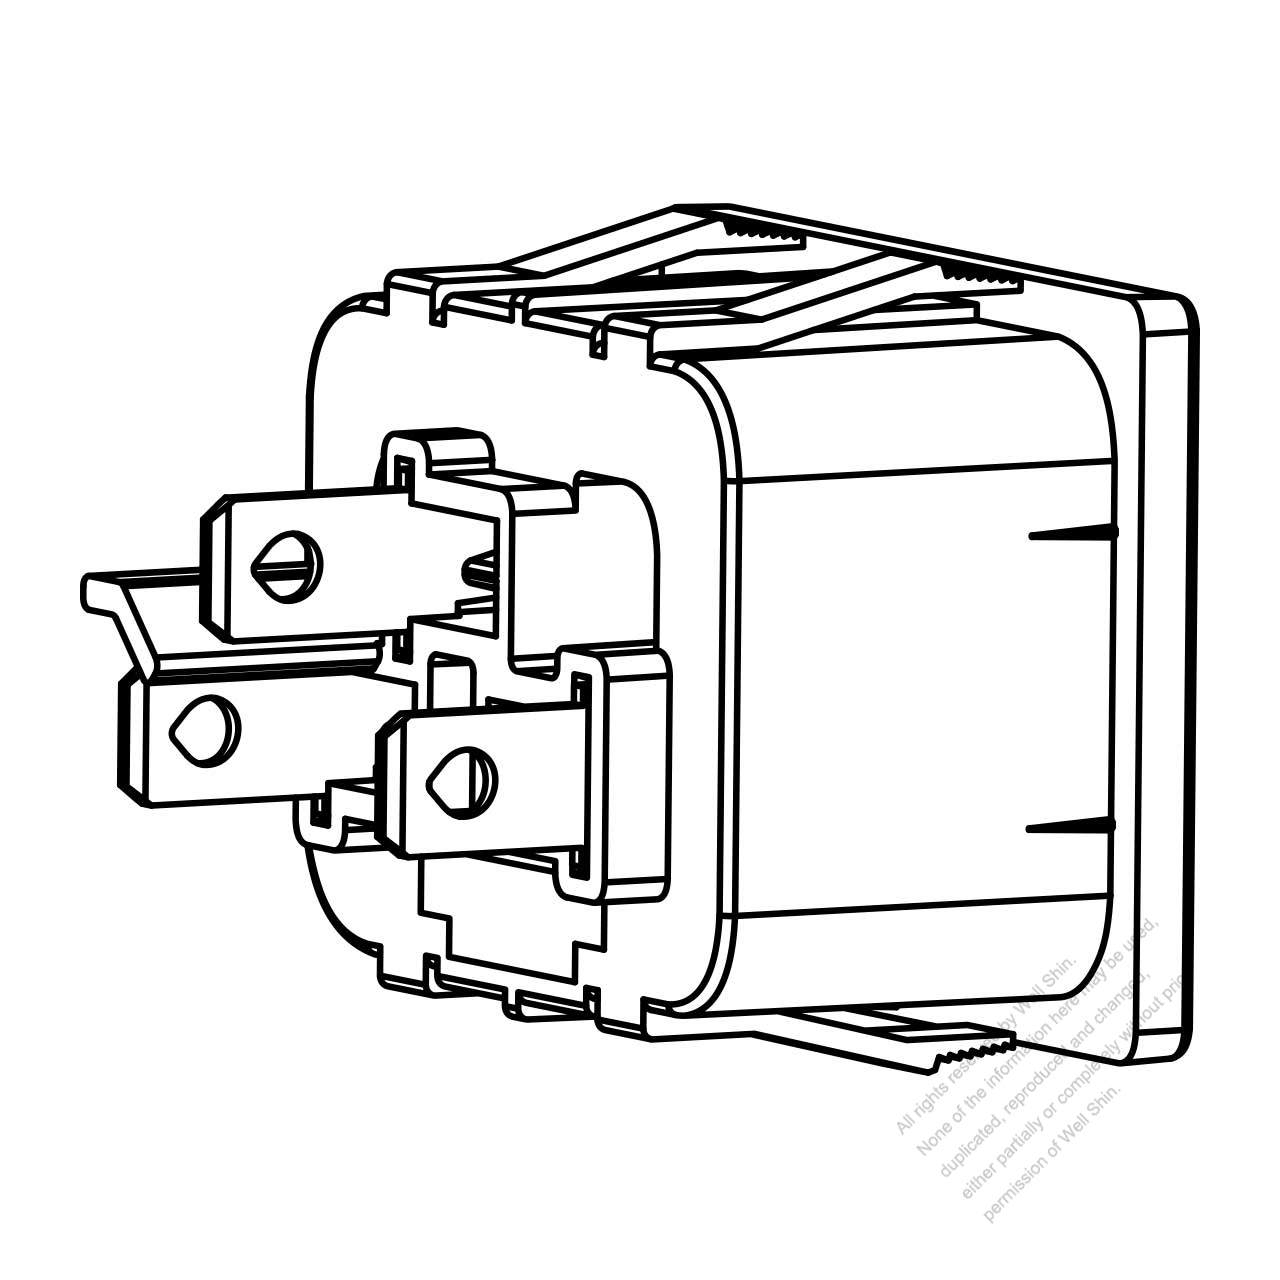 iec 60320-2 sheet j appliance outlet 16a  20a 250v